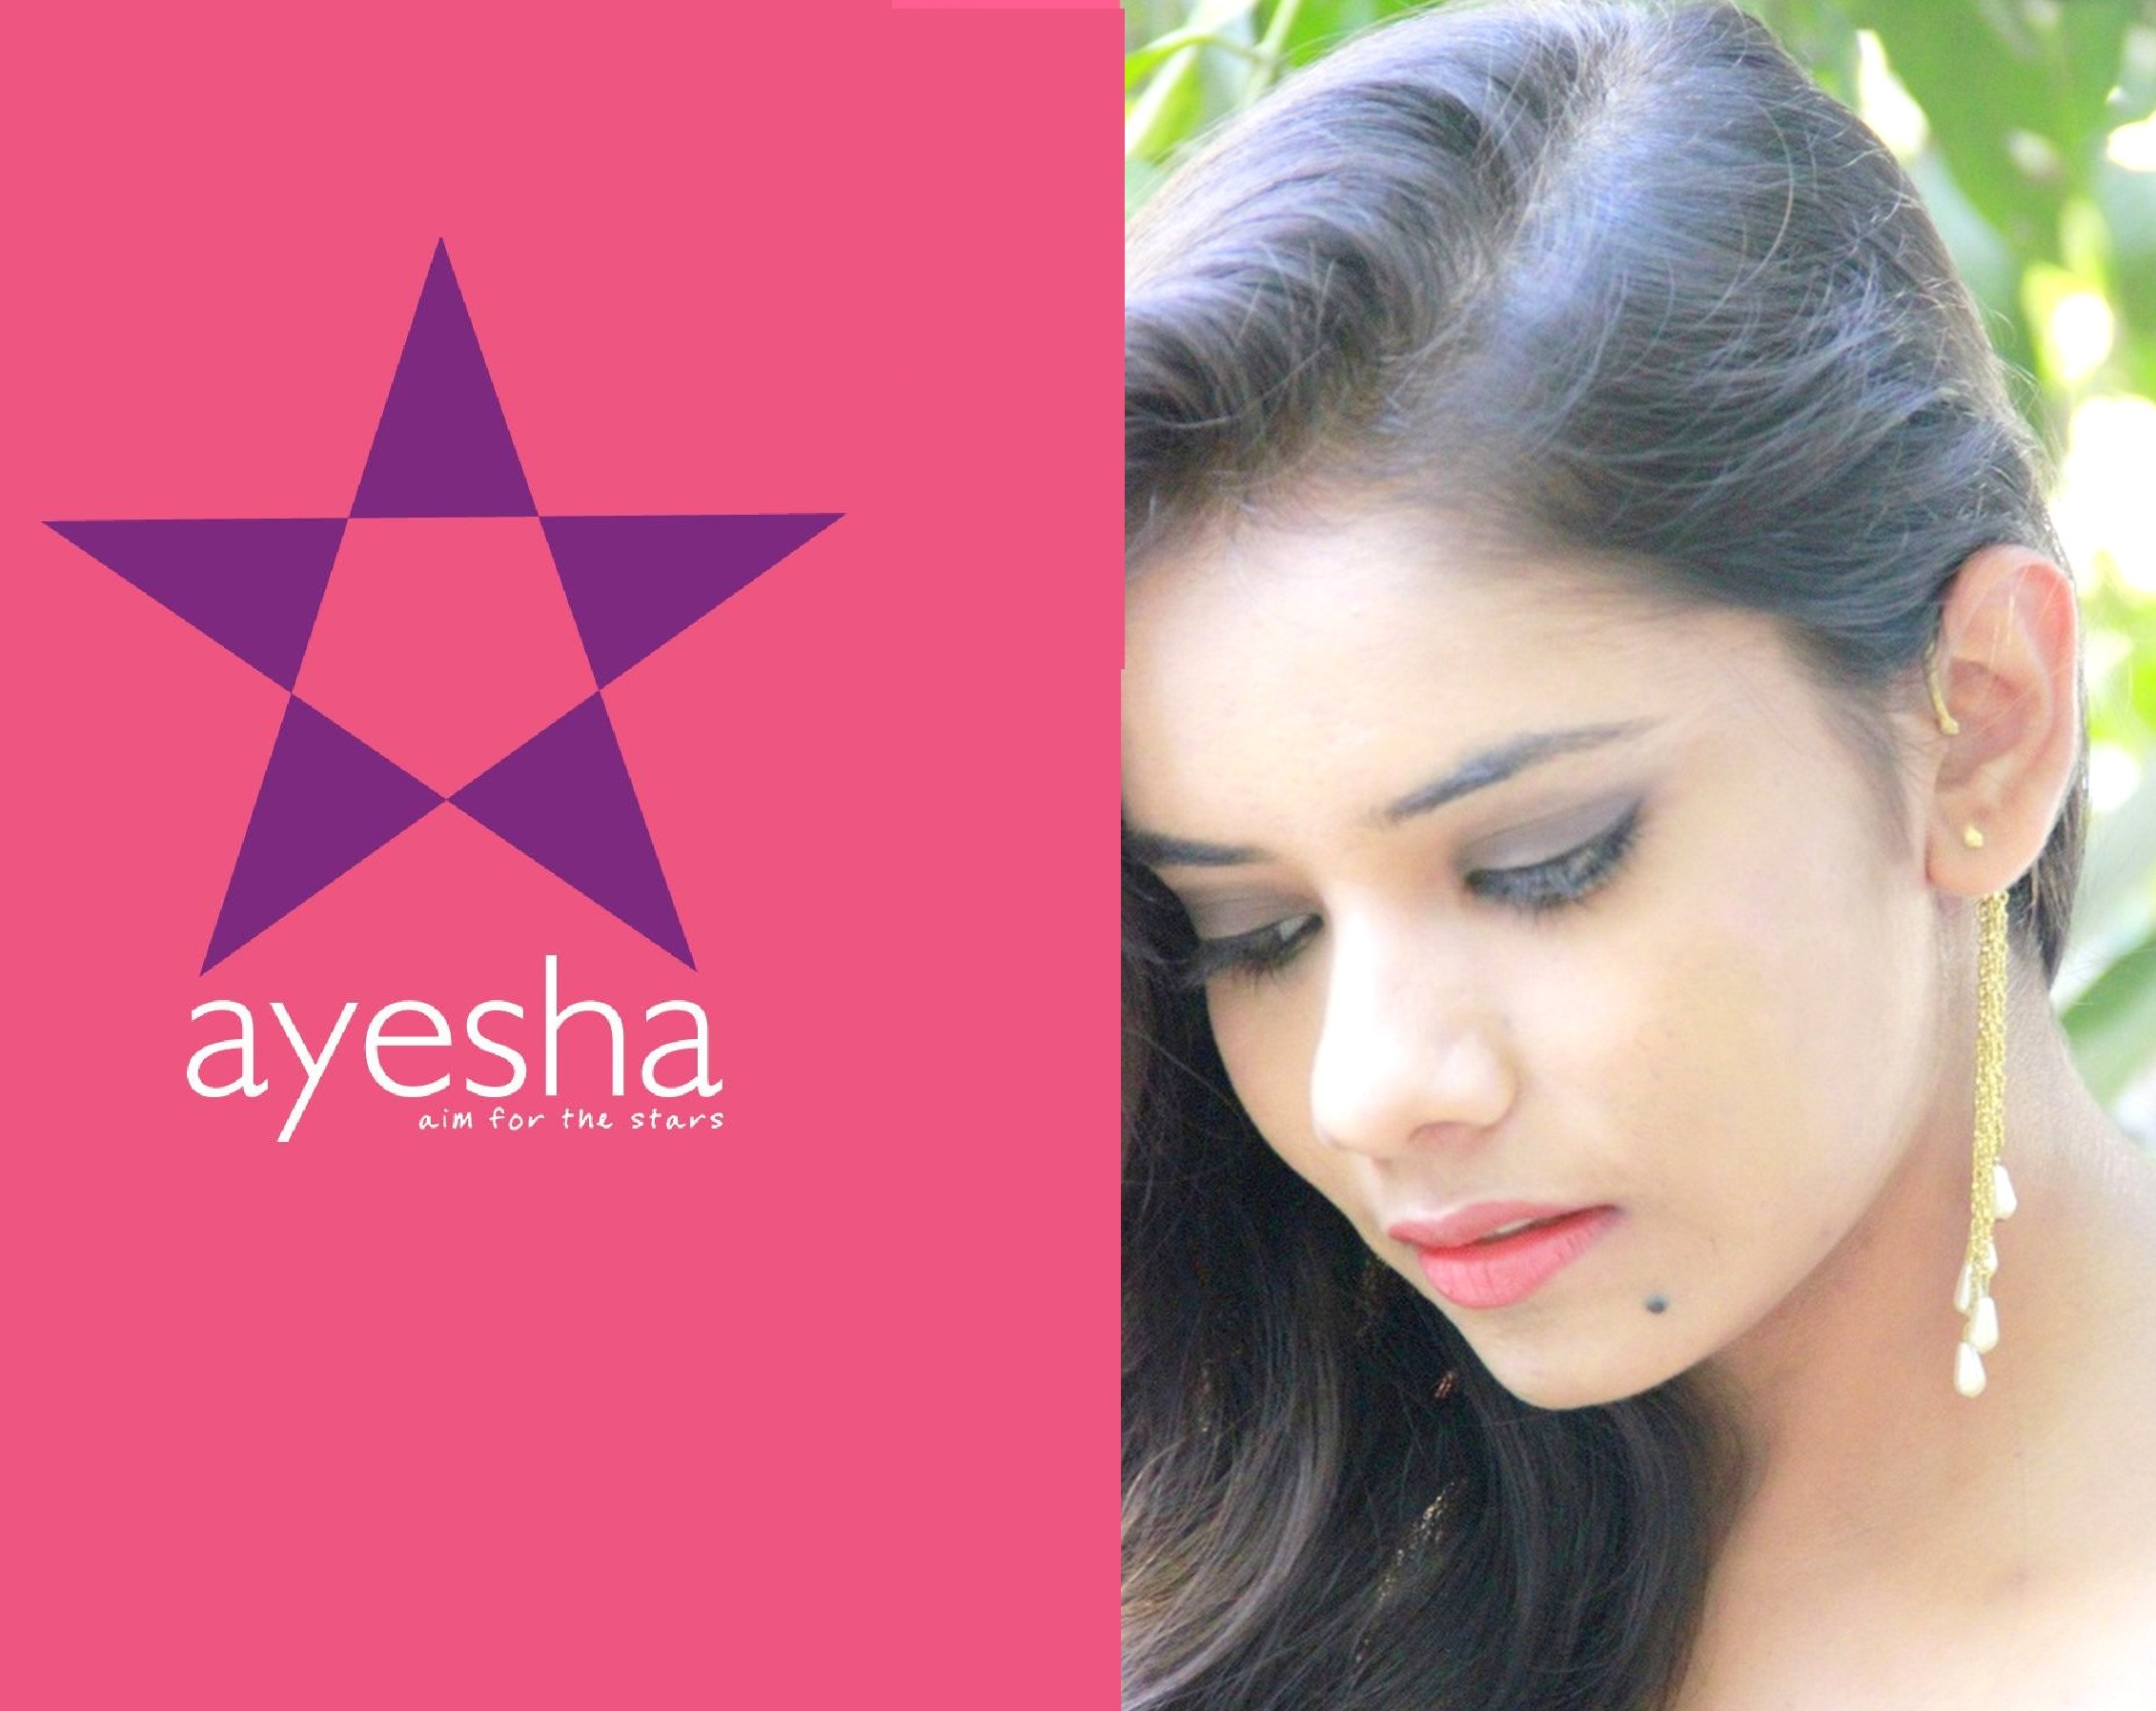 featured image ritwika gupta for Ayesha accessories spotlight xoxo